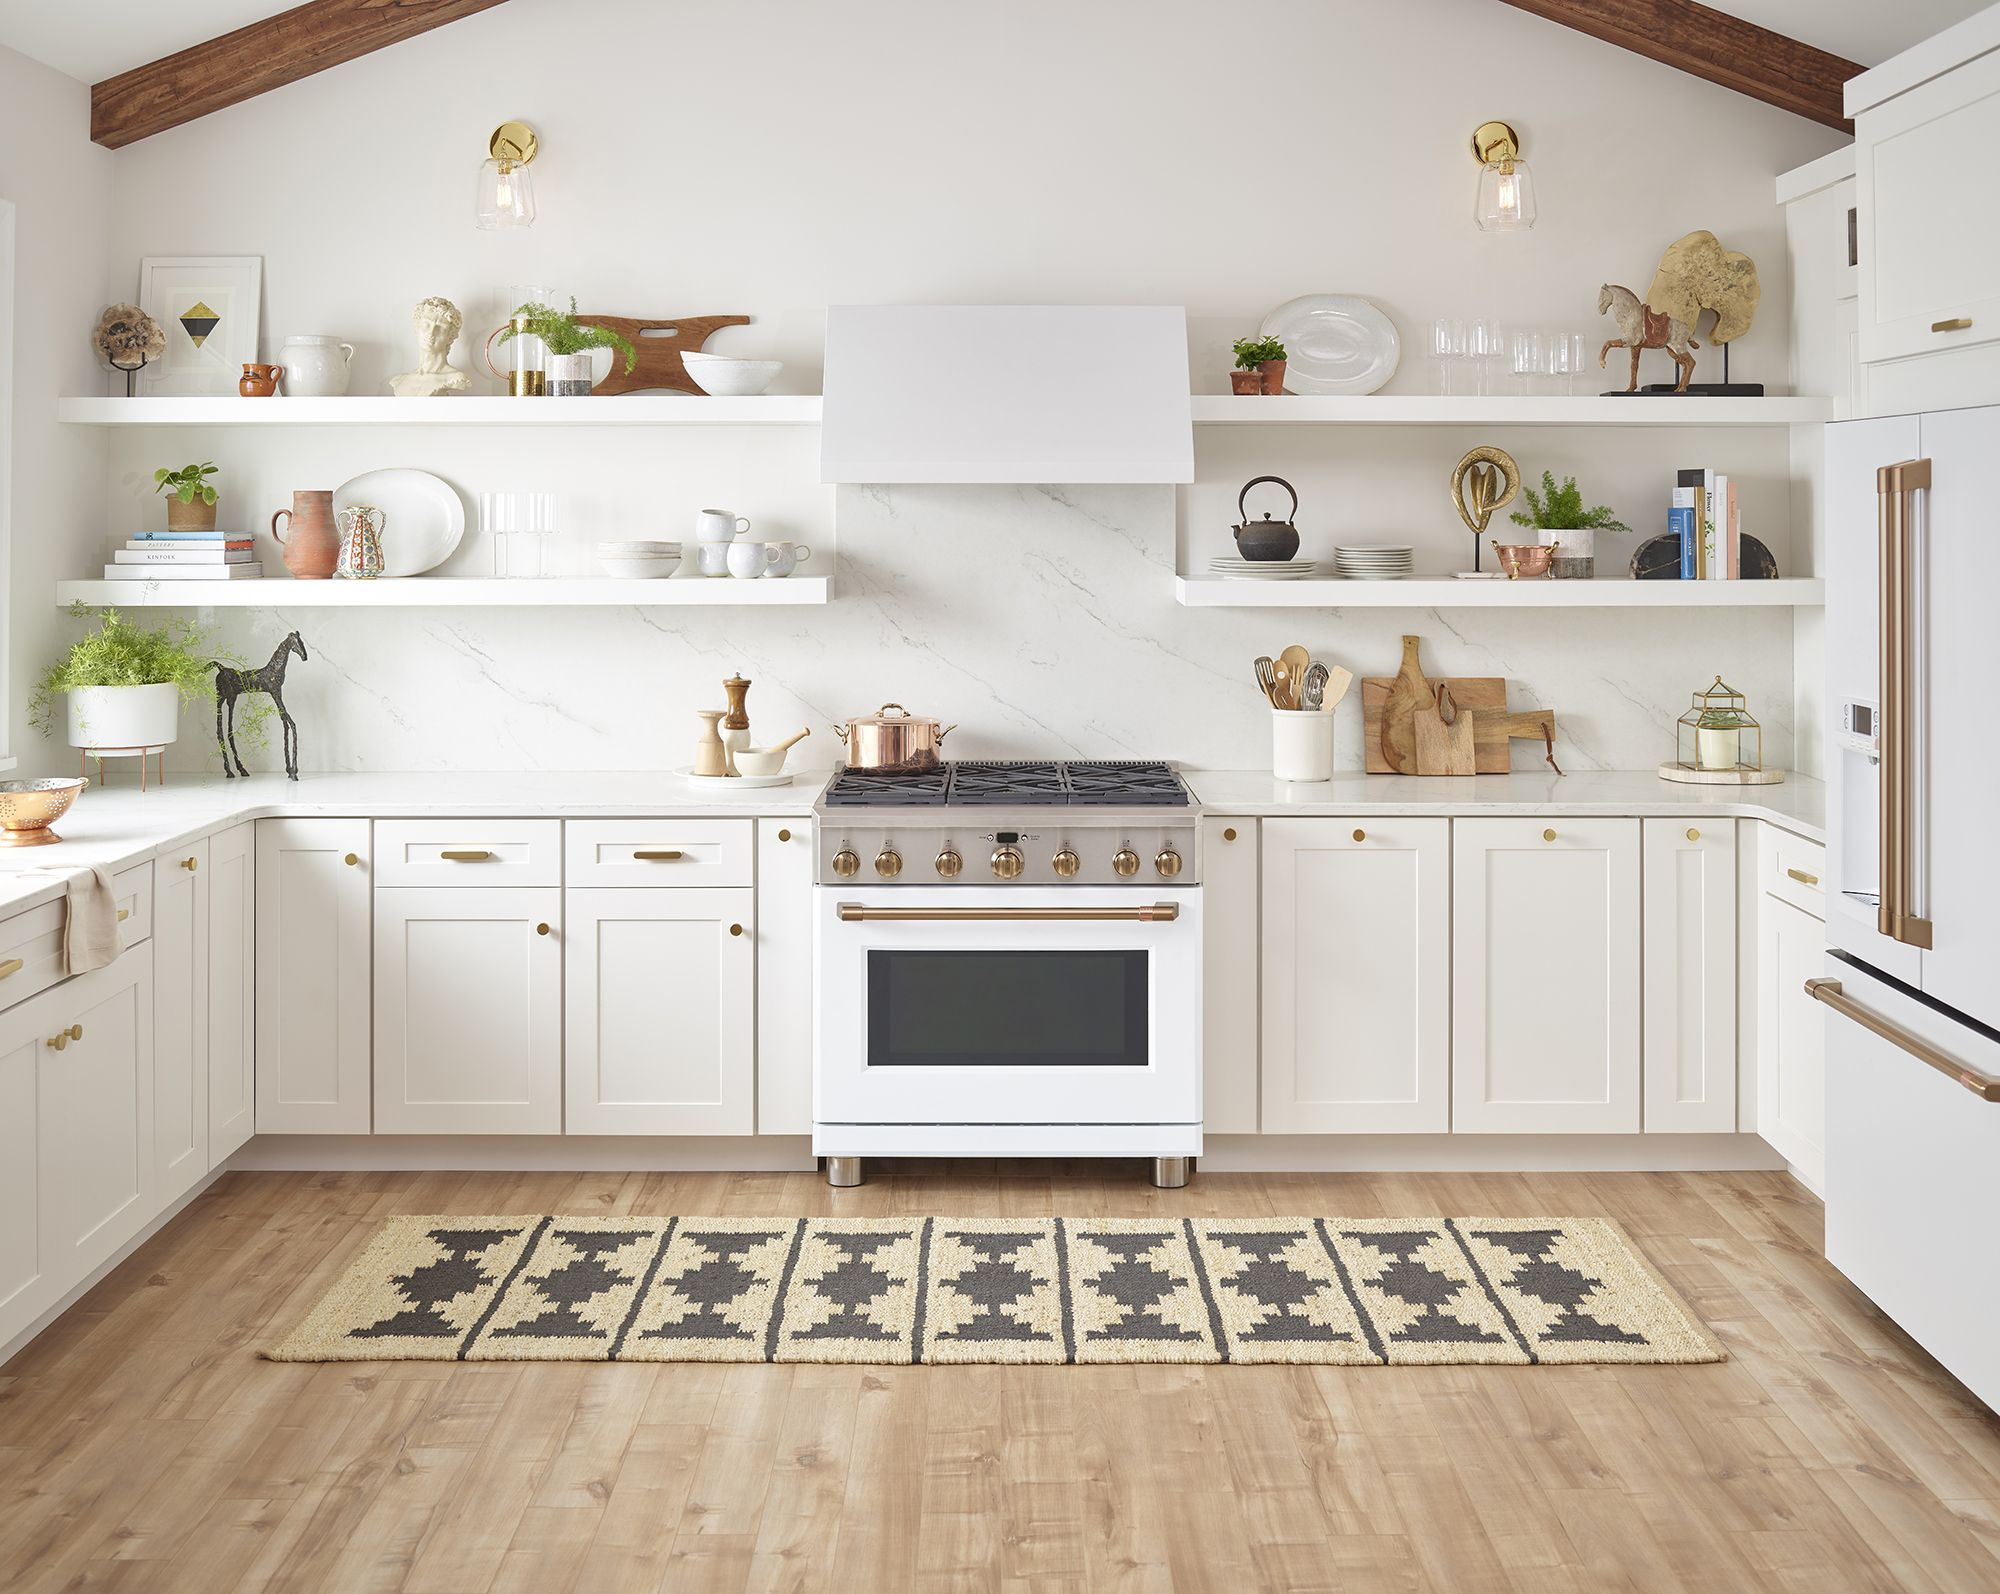 Stylish Cooking That Performs White Appliances Modern Kitchen Appliances White Kitchen Appliances